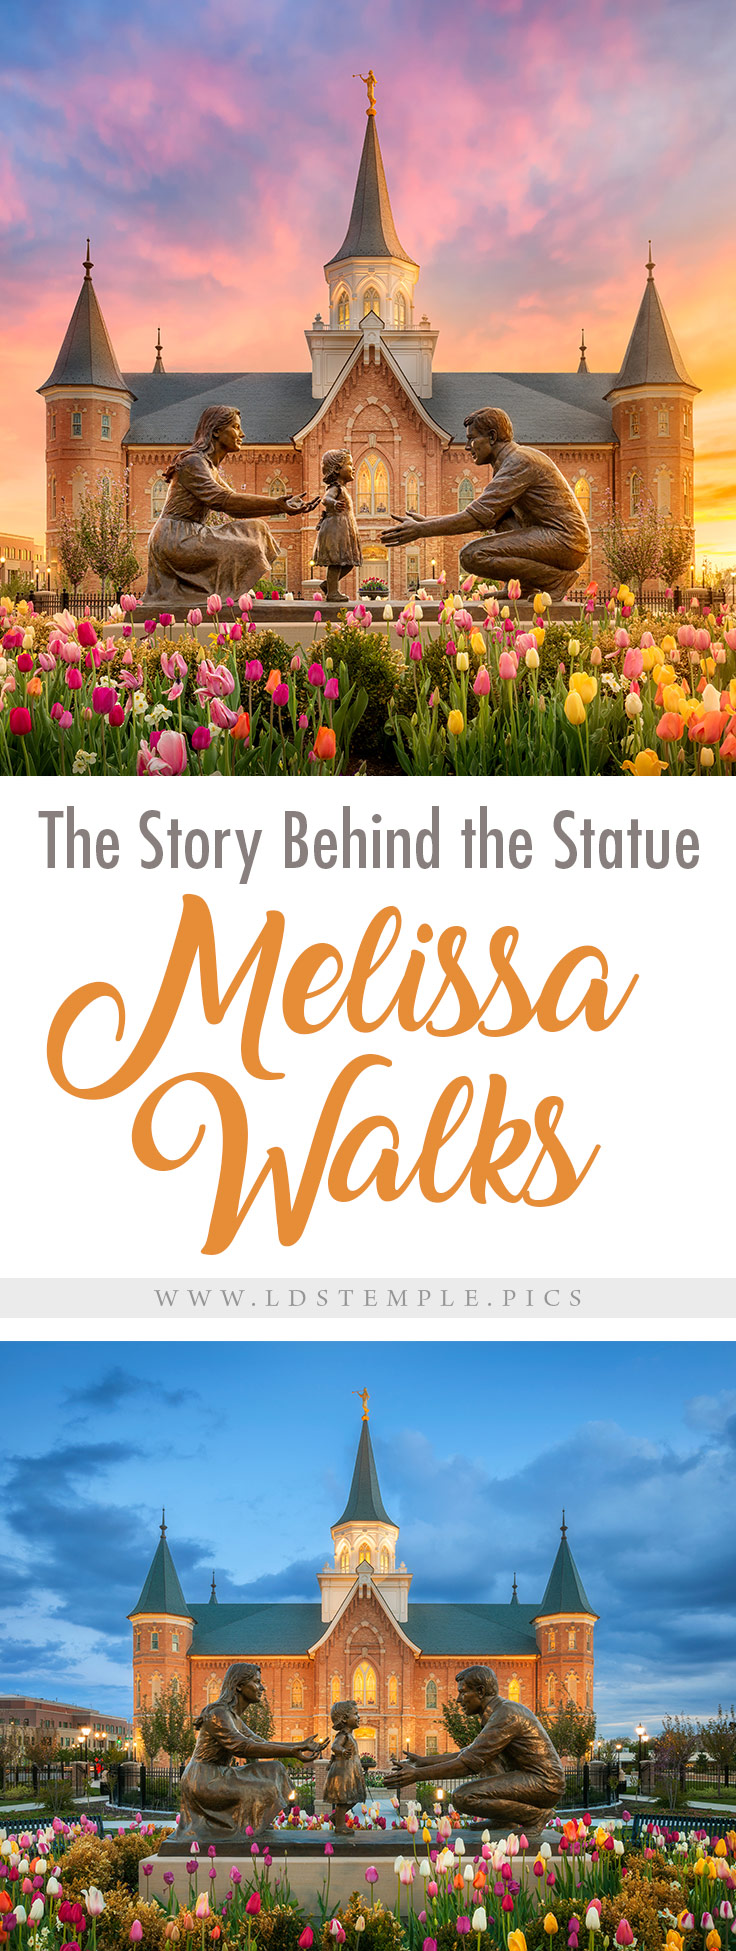 The Story Behind the Statue Melissa Walks